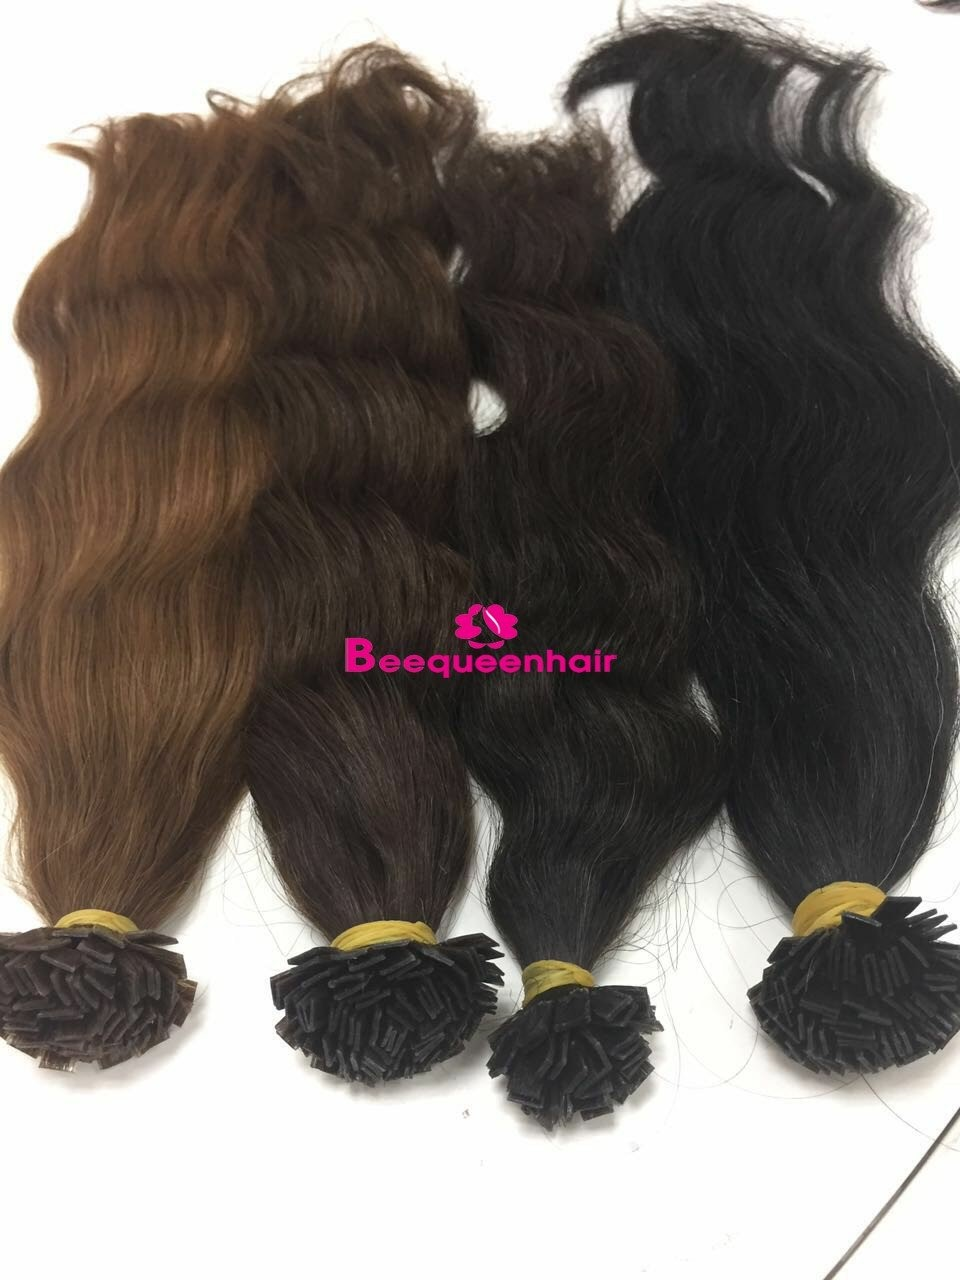 Other Popular Hair Extensions Of Beequeenhair